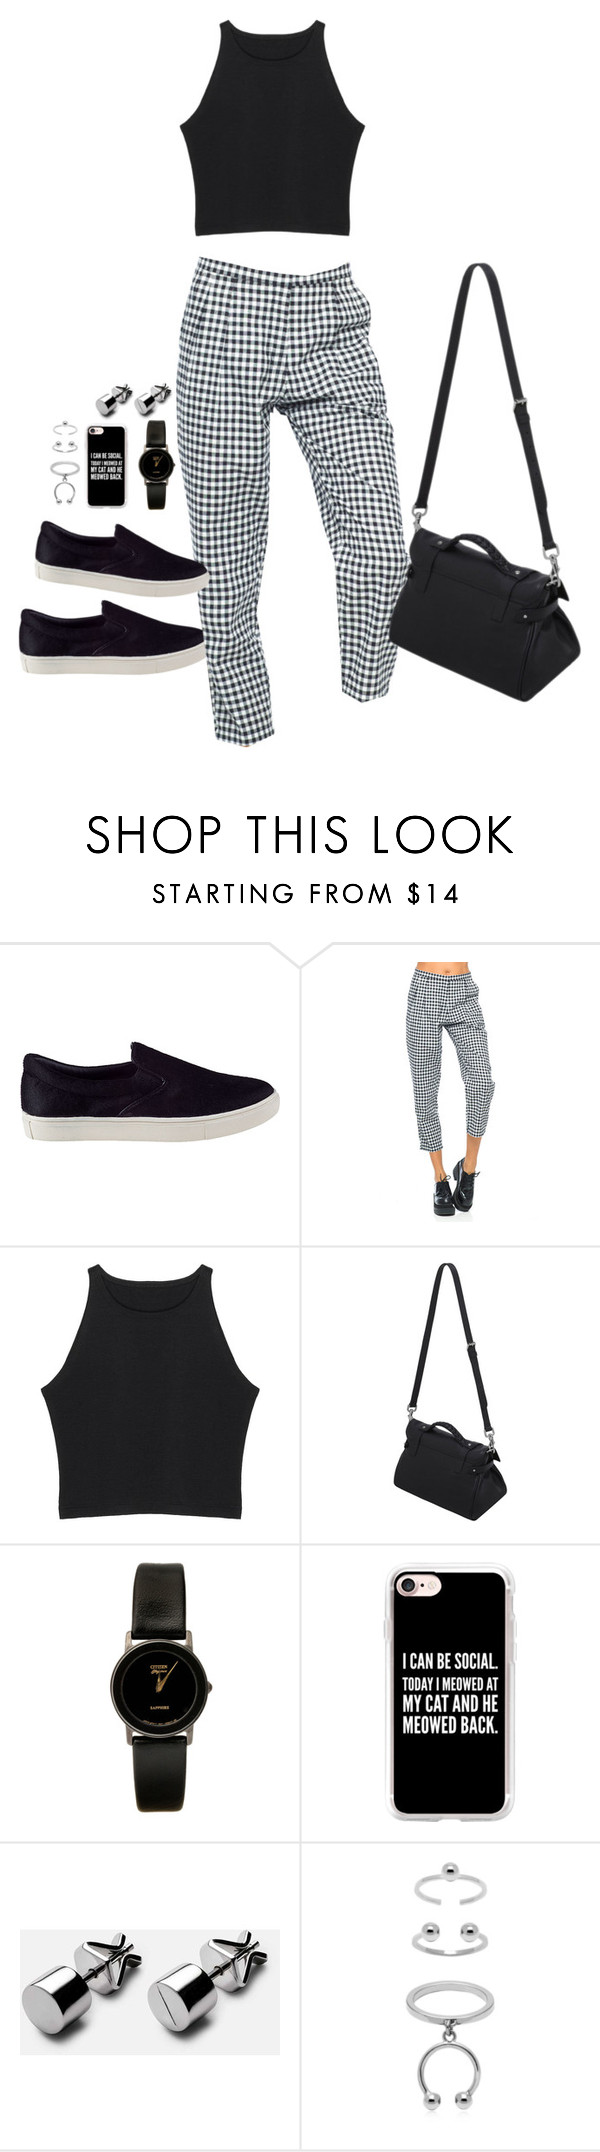 """""""Untitled #738"""" by dearestdana ❤ liked on Polyvore featuring Steve Madden, Motel, Mulberry, American Apparel, Casetify and Maria Francesca Pepe"""